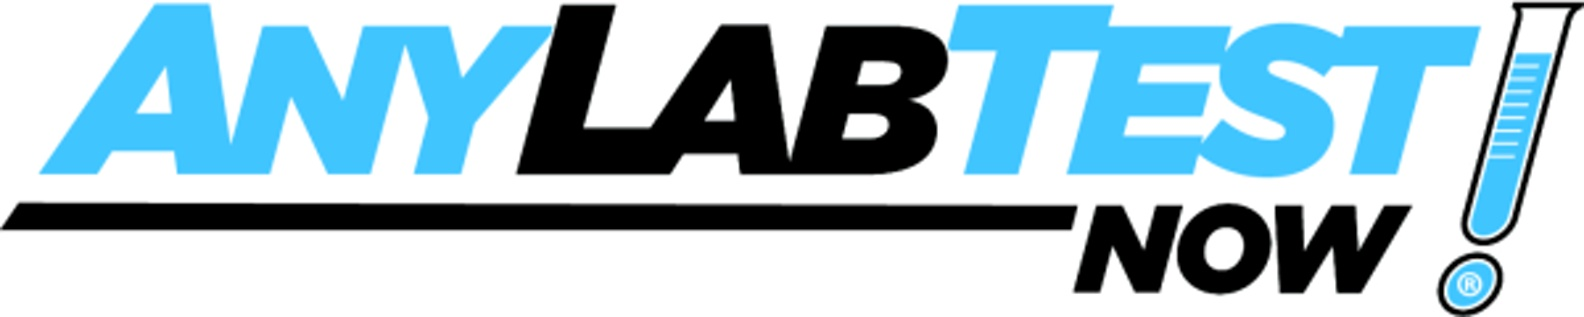 Any Lab Test Now - East Cobb Logo